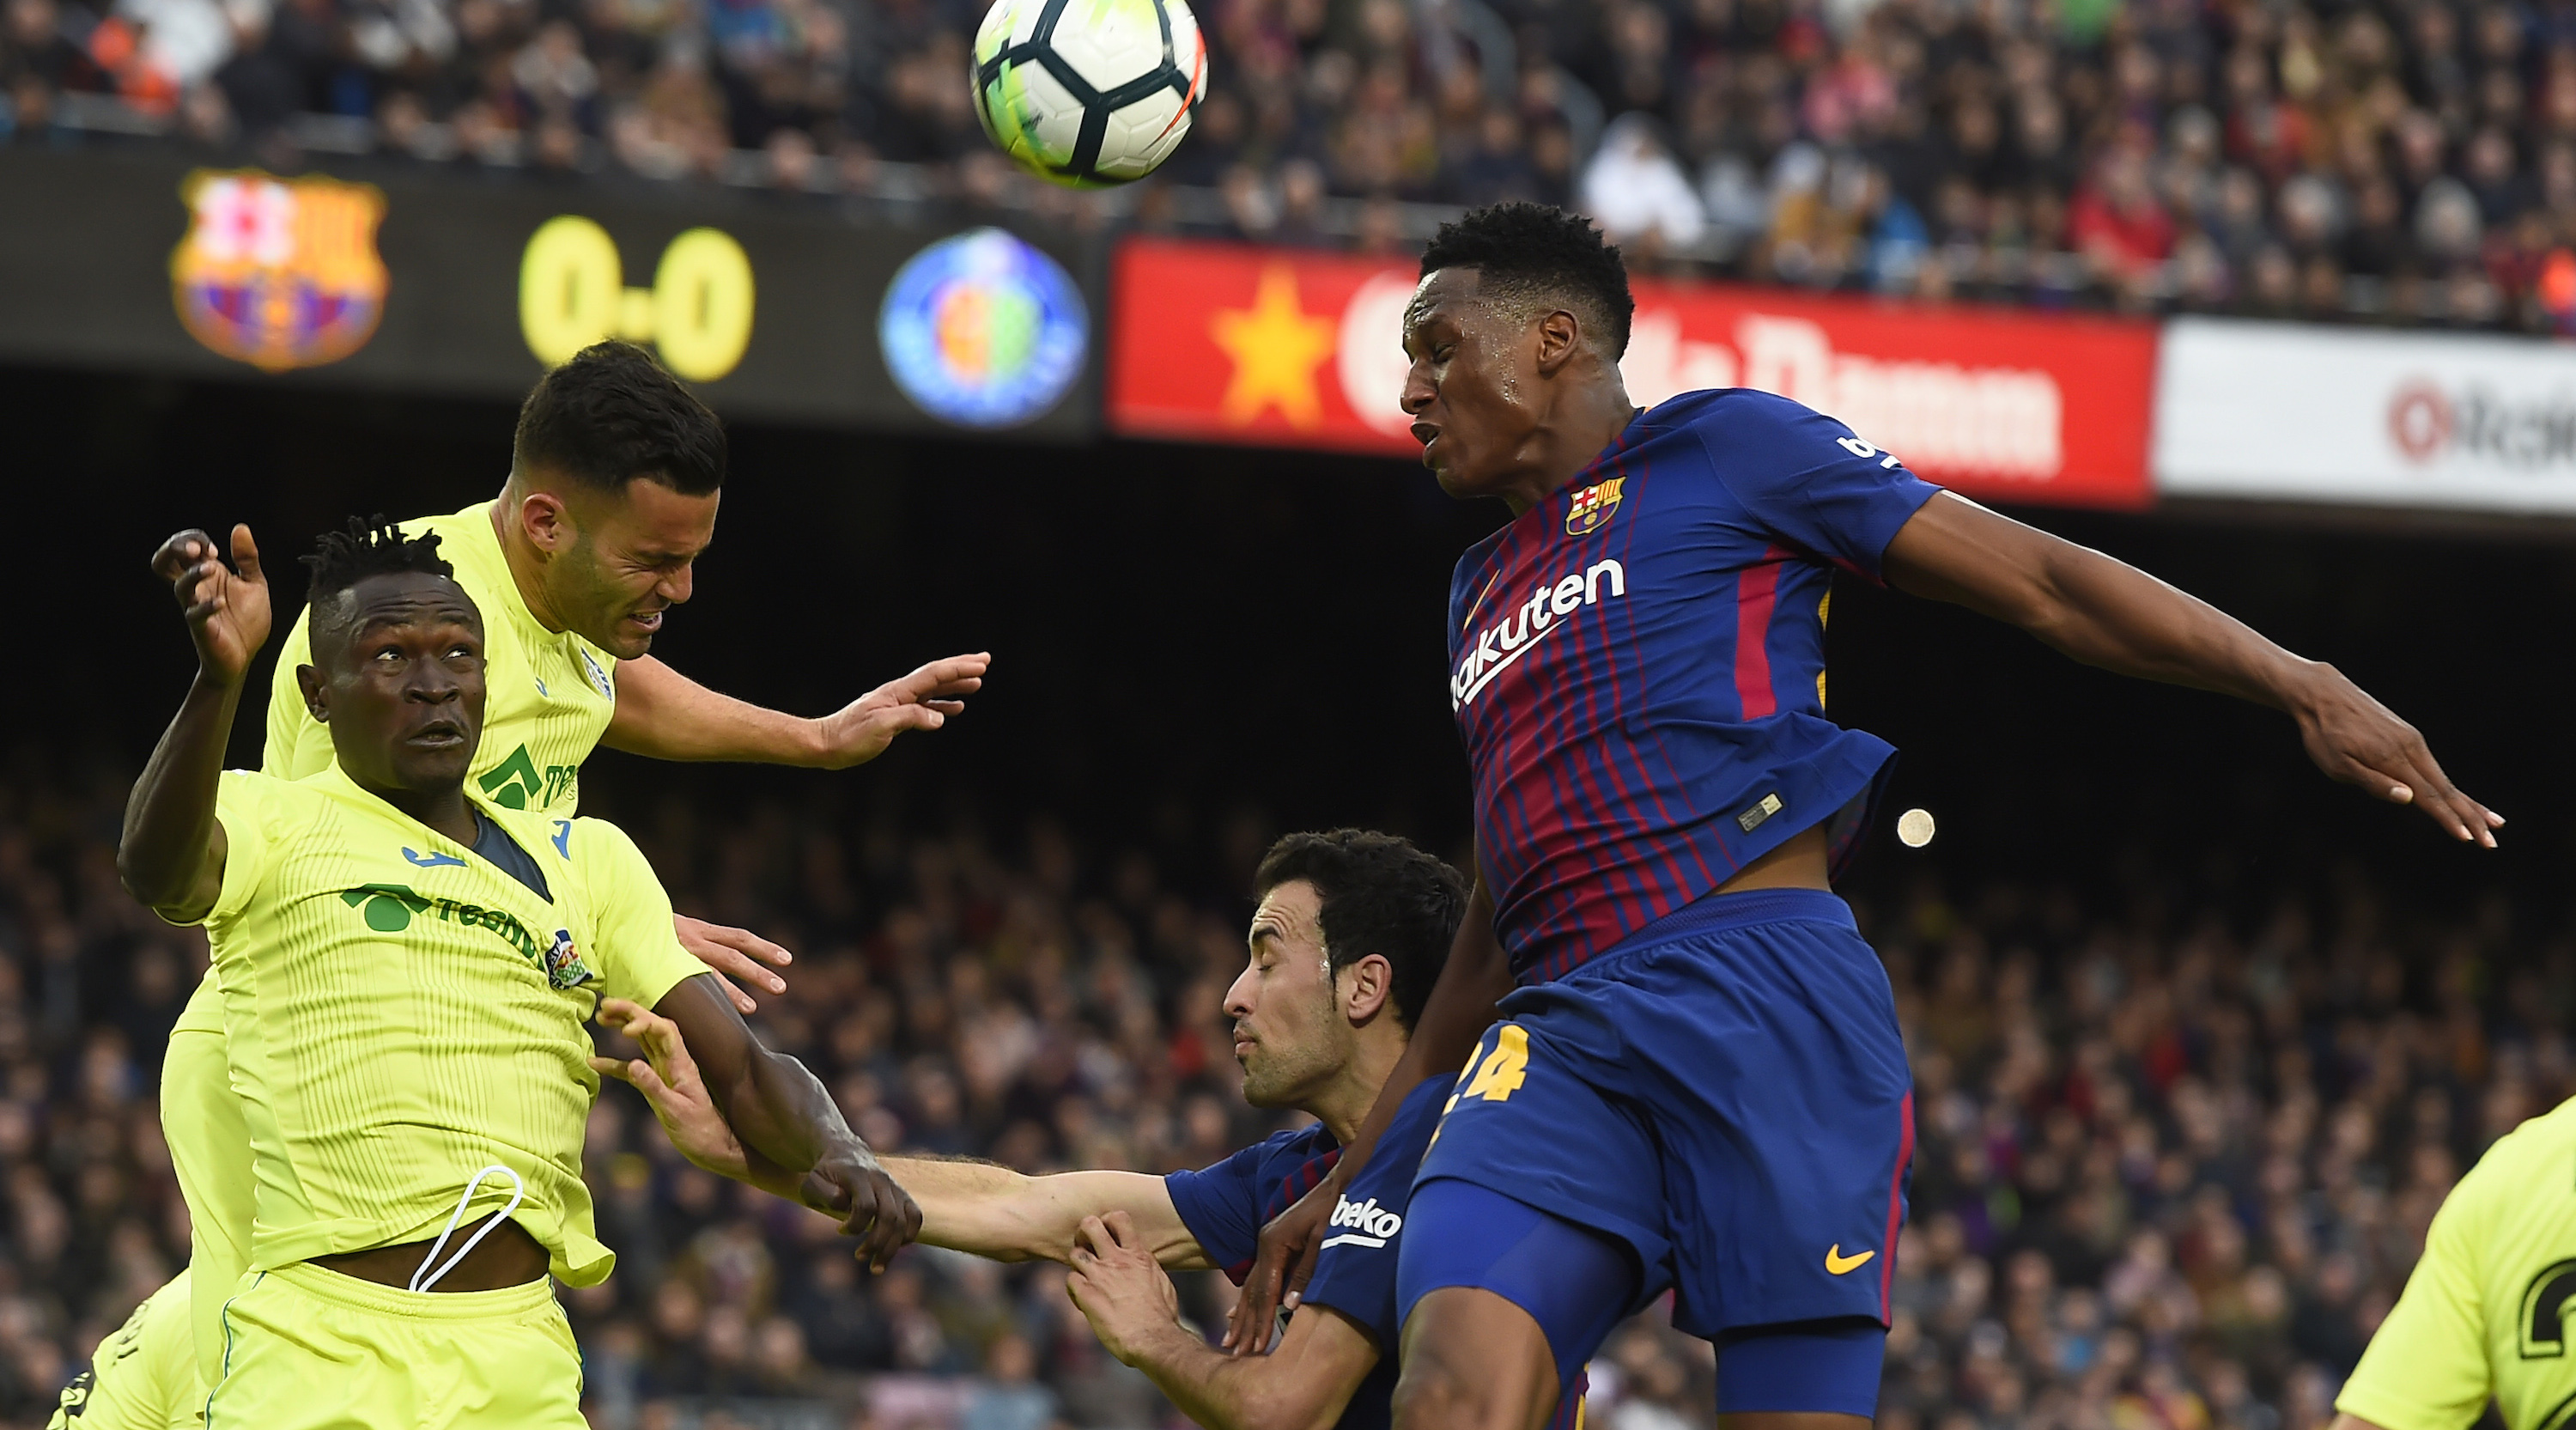 Getafe's Togolese defender Dakonam Djene (L) vies with Barcelona's Colombian defender Yerry Mina (R) during the Spanish league football match between FC Barcelona and Getafe CF at the Camp Nou stadium in Barcelona on February 11, 2018. / AFP PHOTO / Josep LAGO (Photo credit should read JOSEP LAGO/AFP/Getty Images)